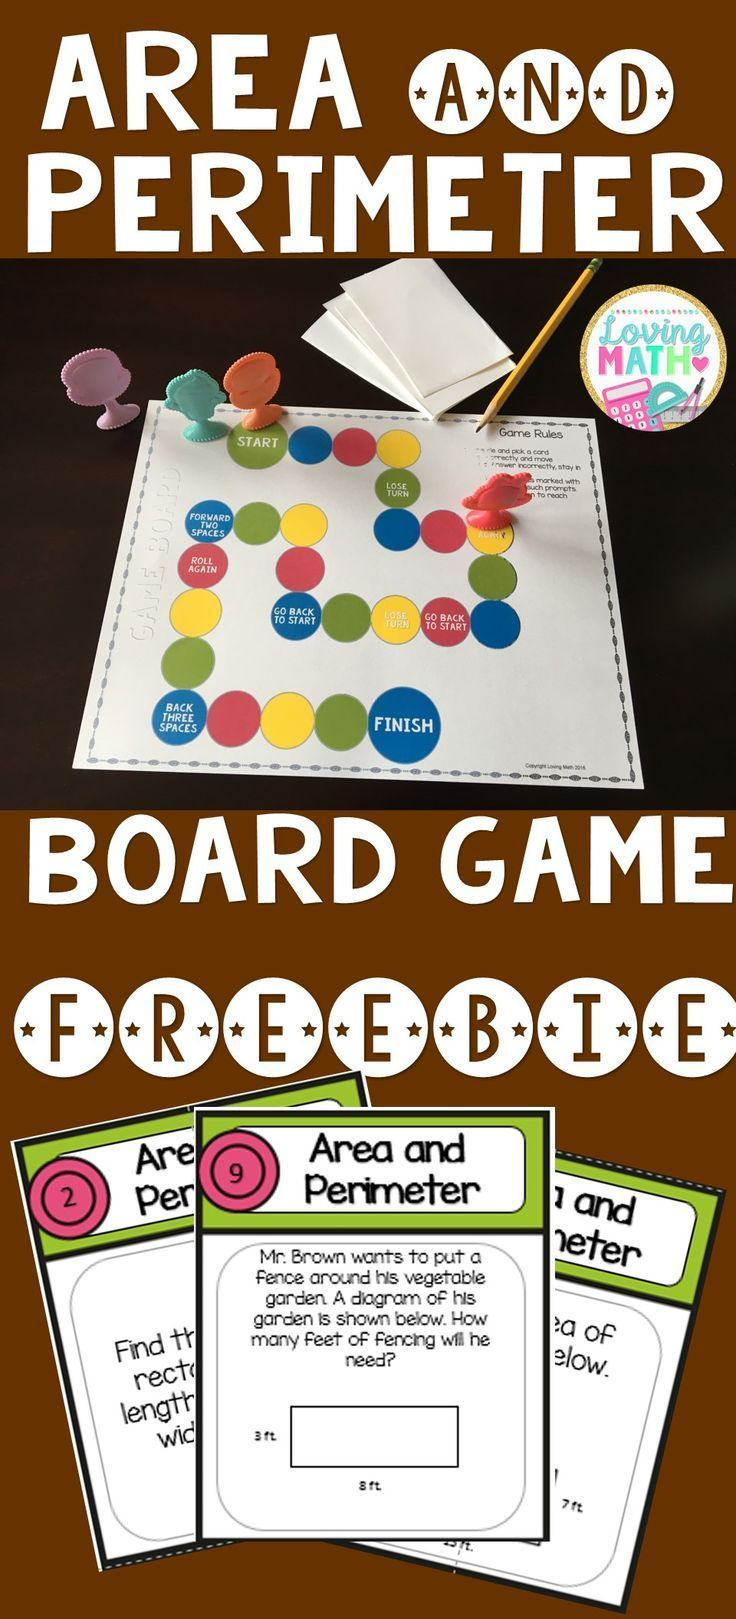 Great Freebie to practice area and perimeter! #mathpracticegames